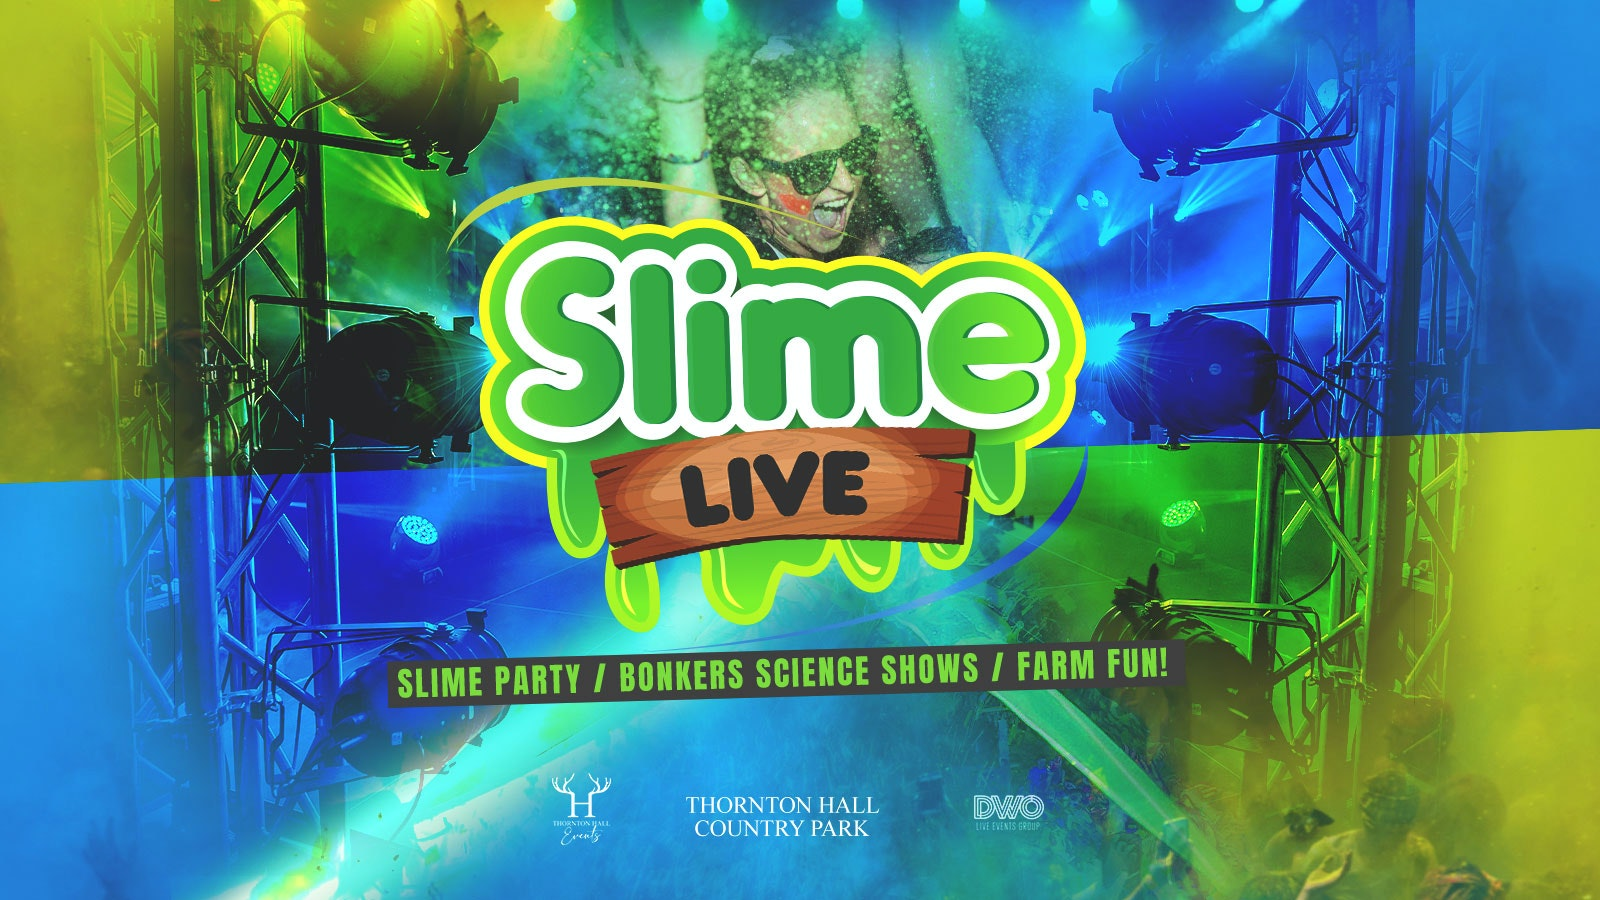 Slime Live (including Farm Park Entry) – Wednesday 18th August – All Day Ticket